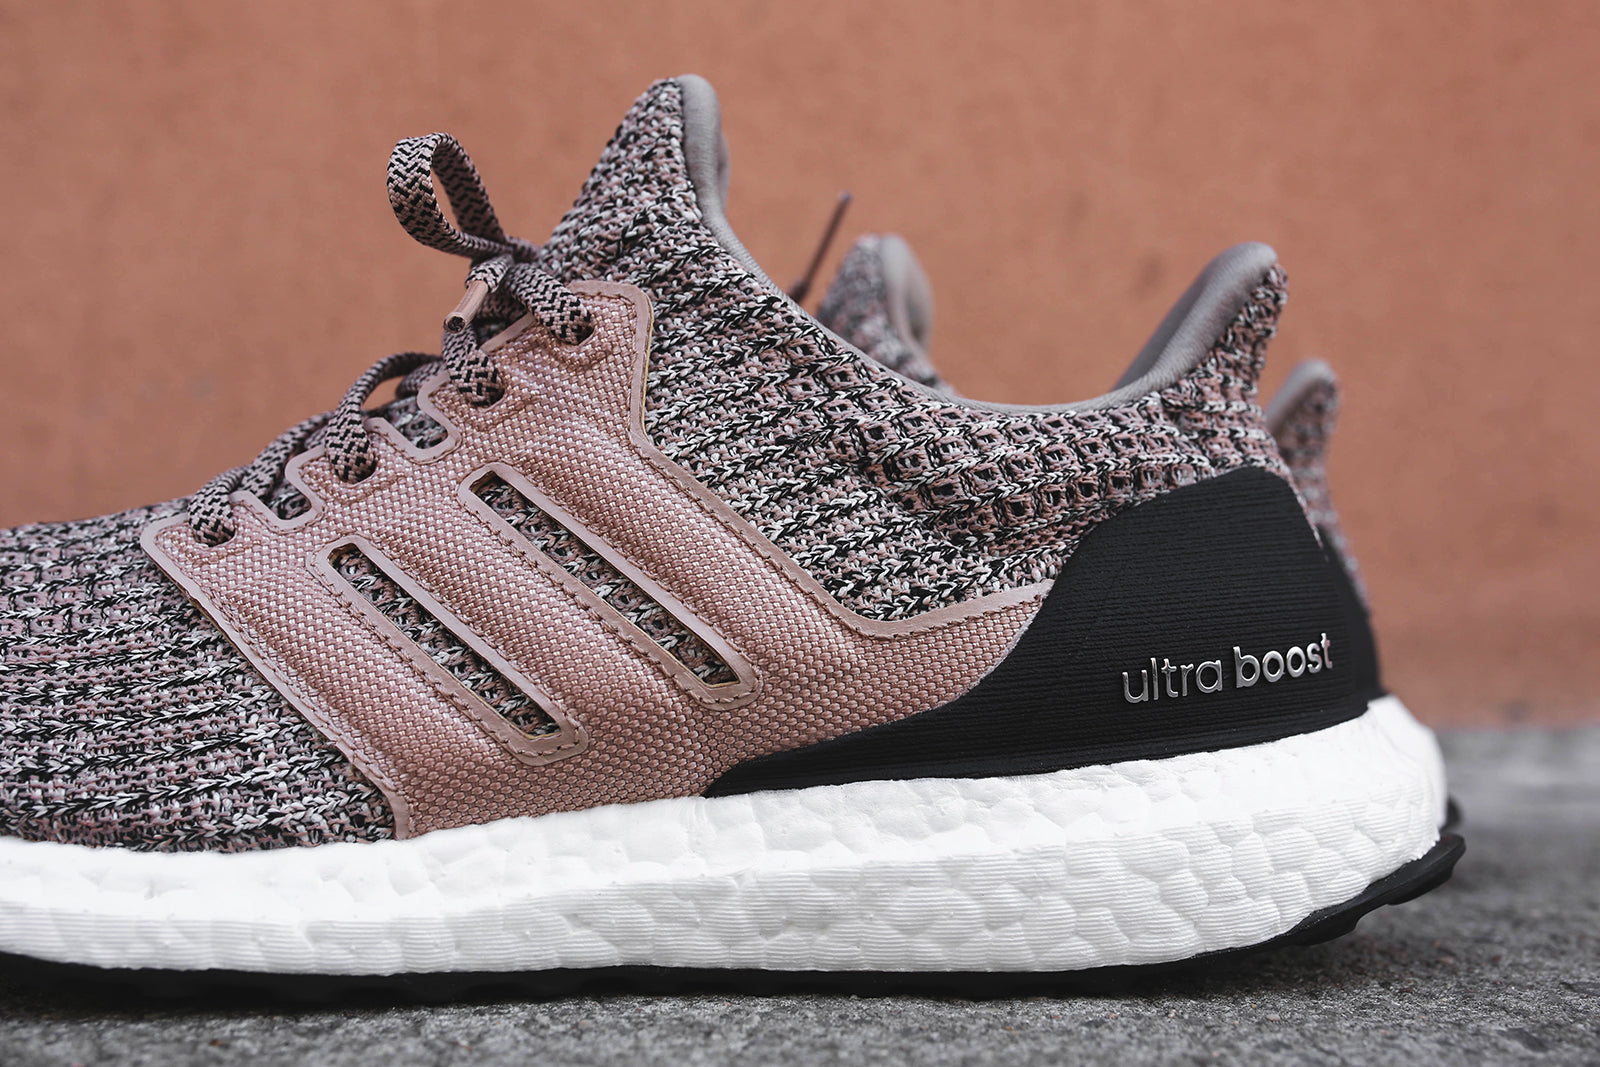 separation shoes 30624 ebc63 adidas UltraBoost 4.0 - Grey / White